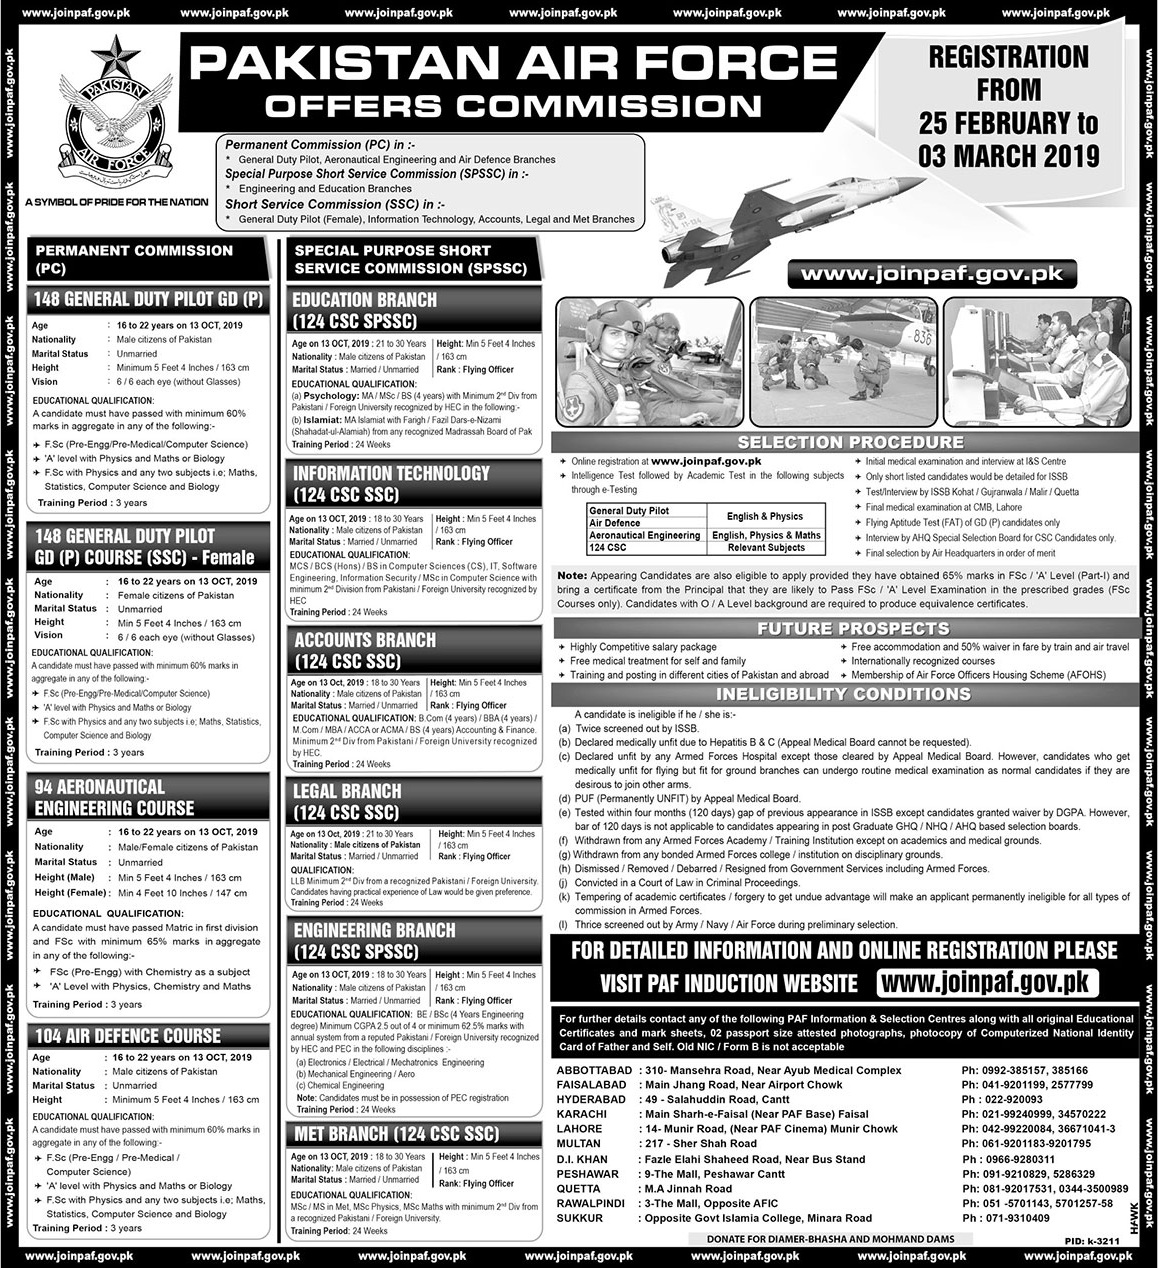 Join Pakistan Air Force as Commission Officer, PAF Jobs 2019 - joinpaf.gov.pk